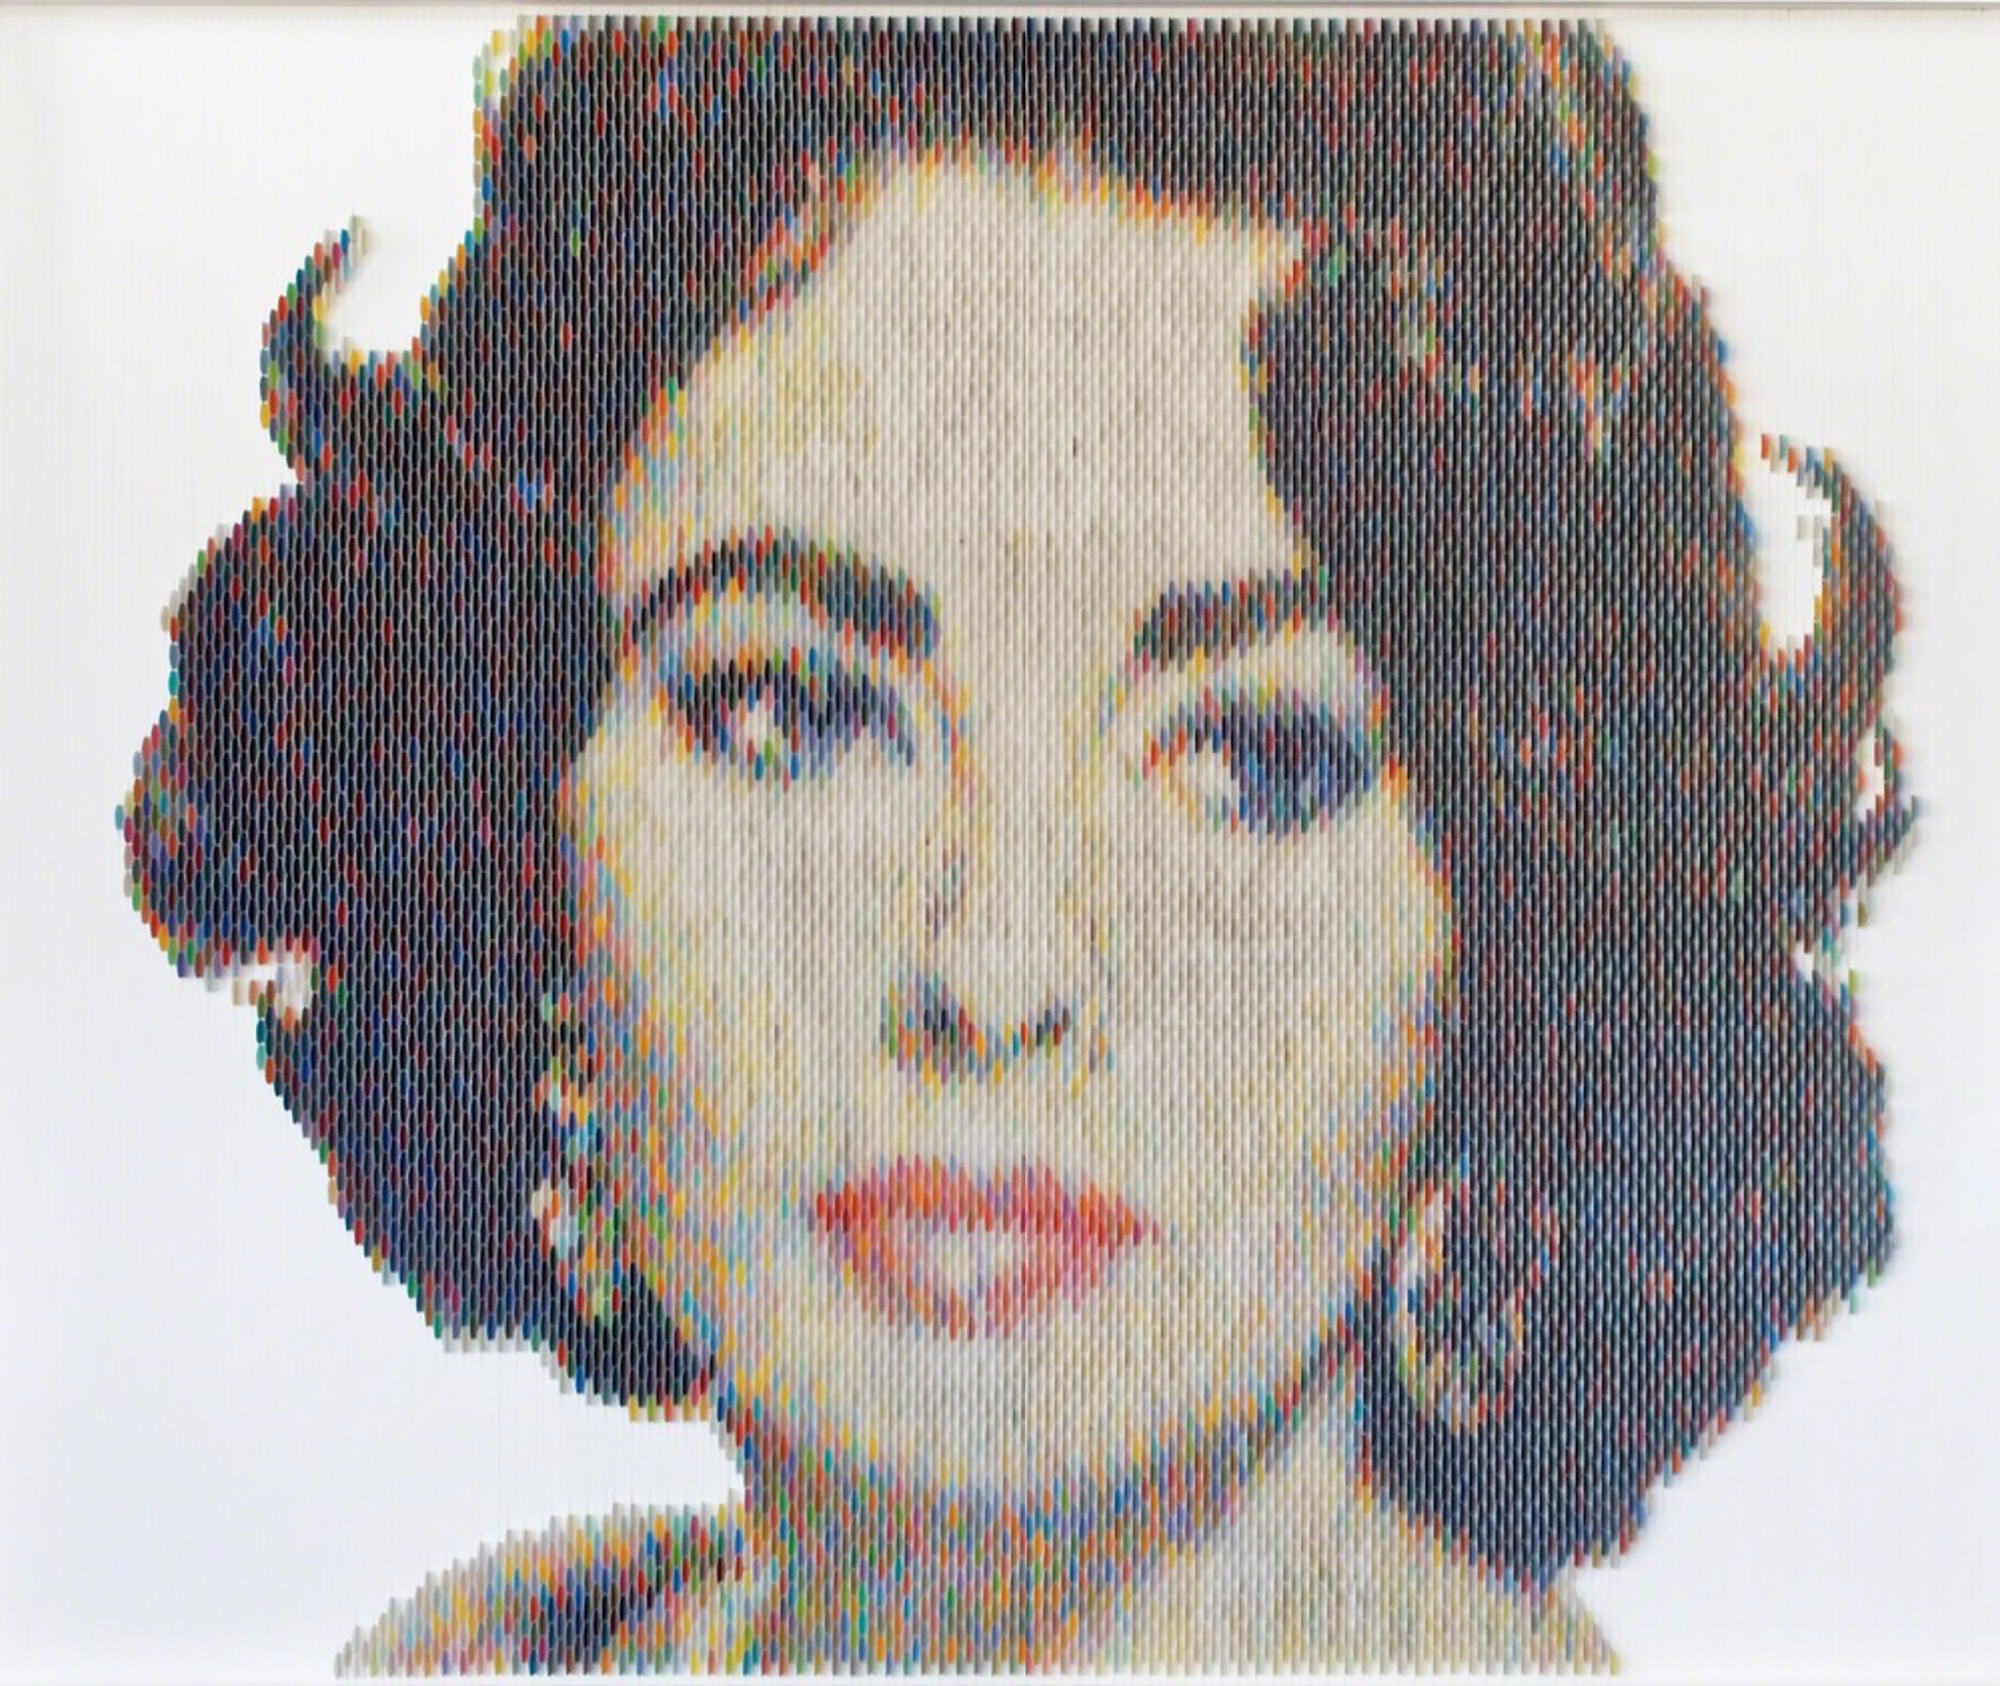 New Portraits Made From Hundreds of Punched Paint Chips